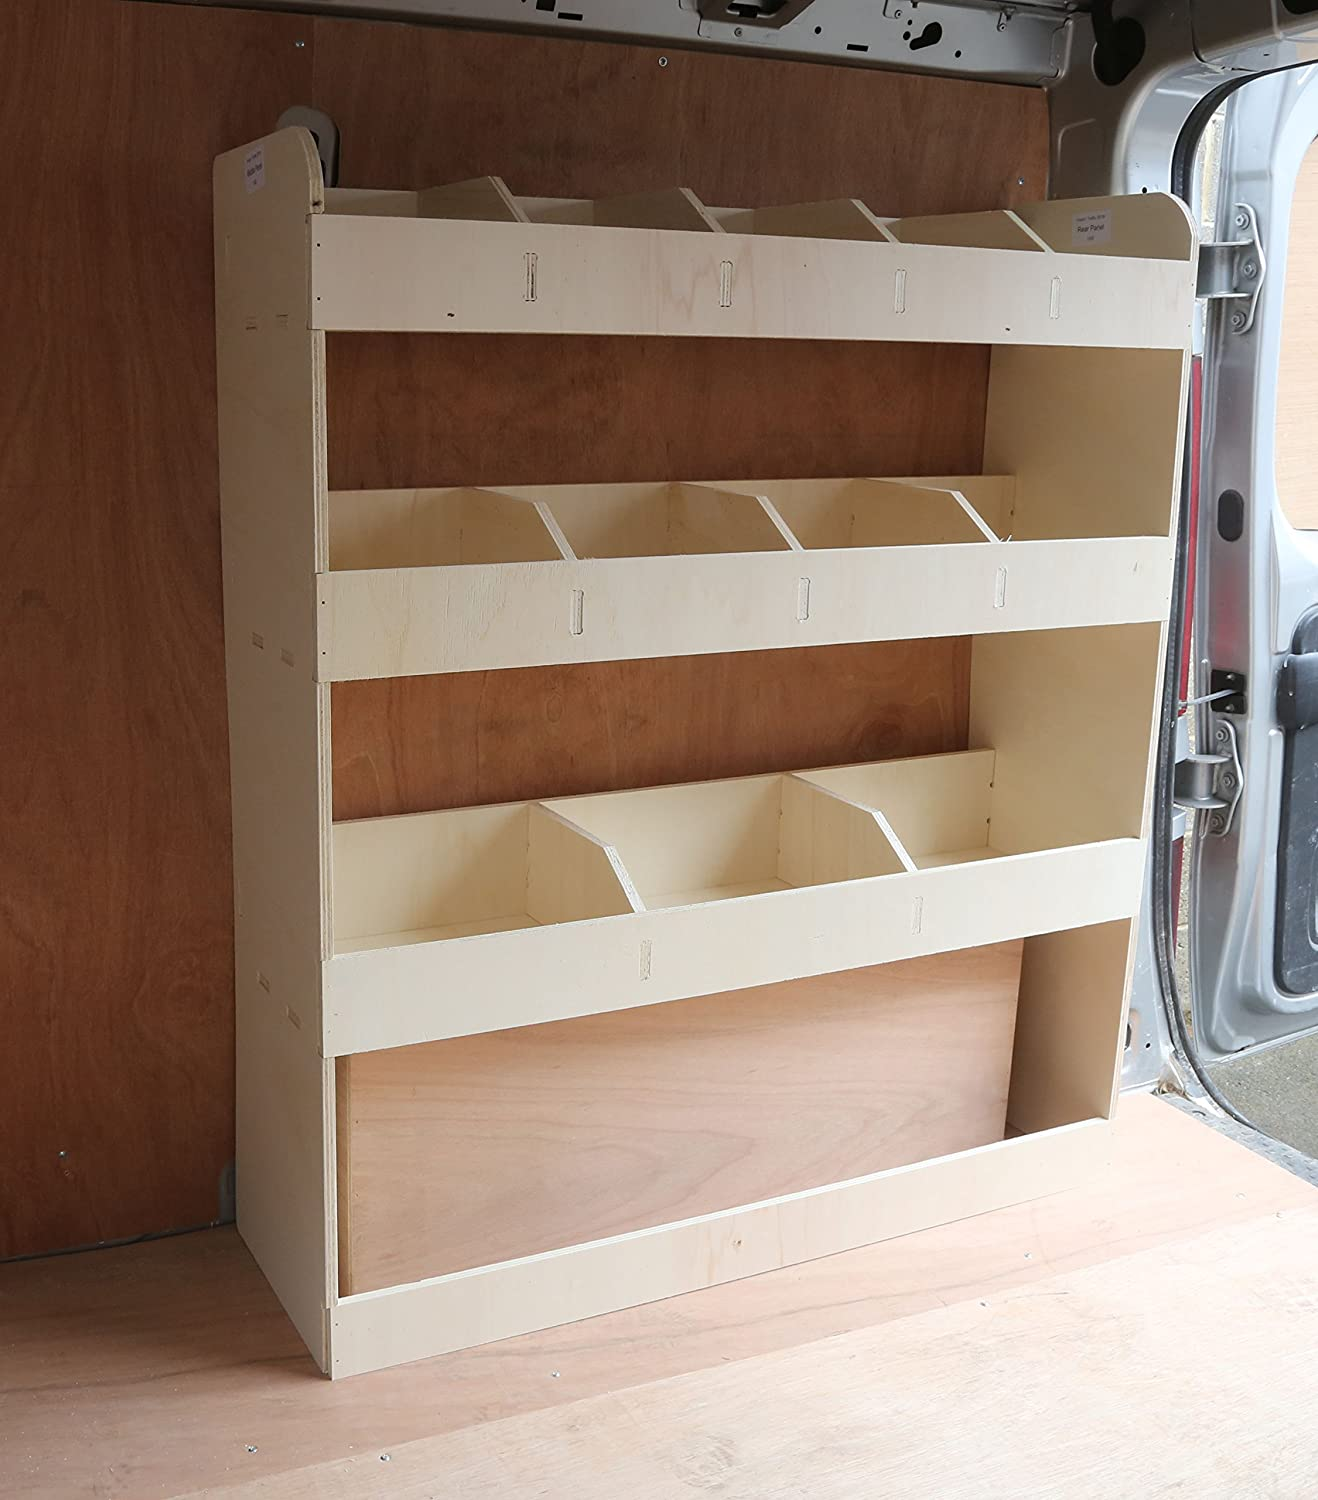 Racking Storage System Renault Trafic LWB 2015-2019 OS Front /& Rear Lightweight Plywood Van Shelving Tool Rack